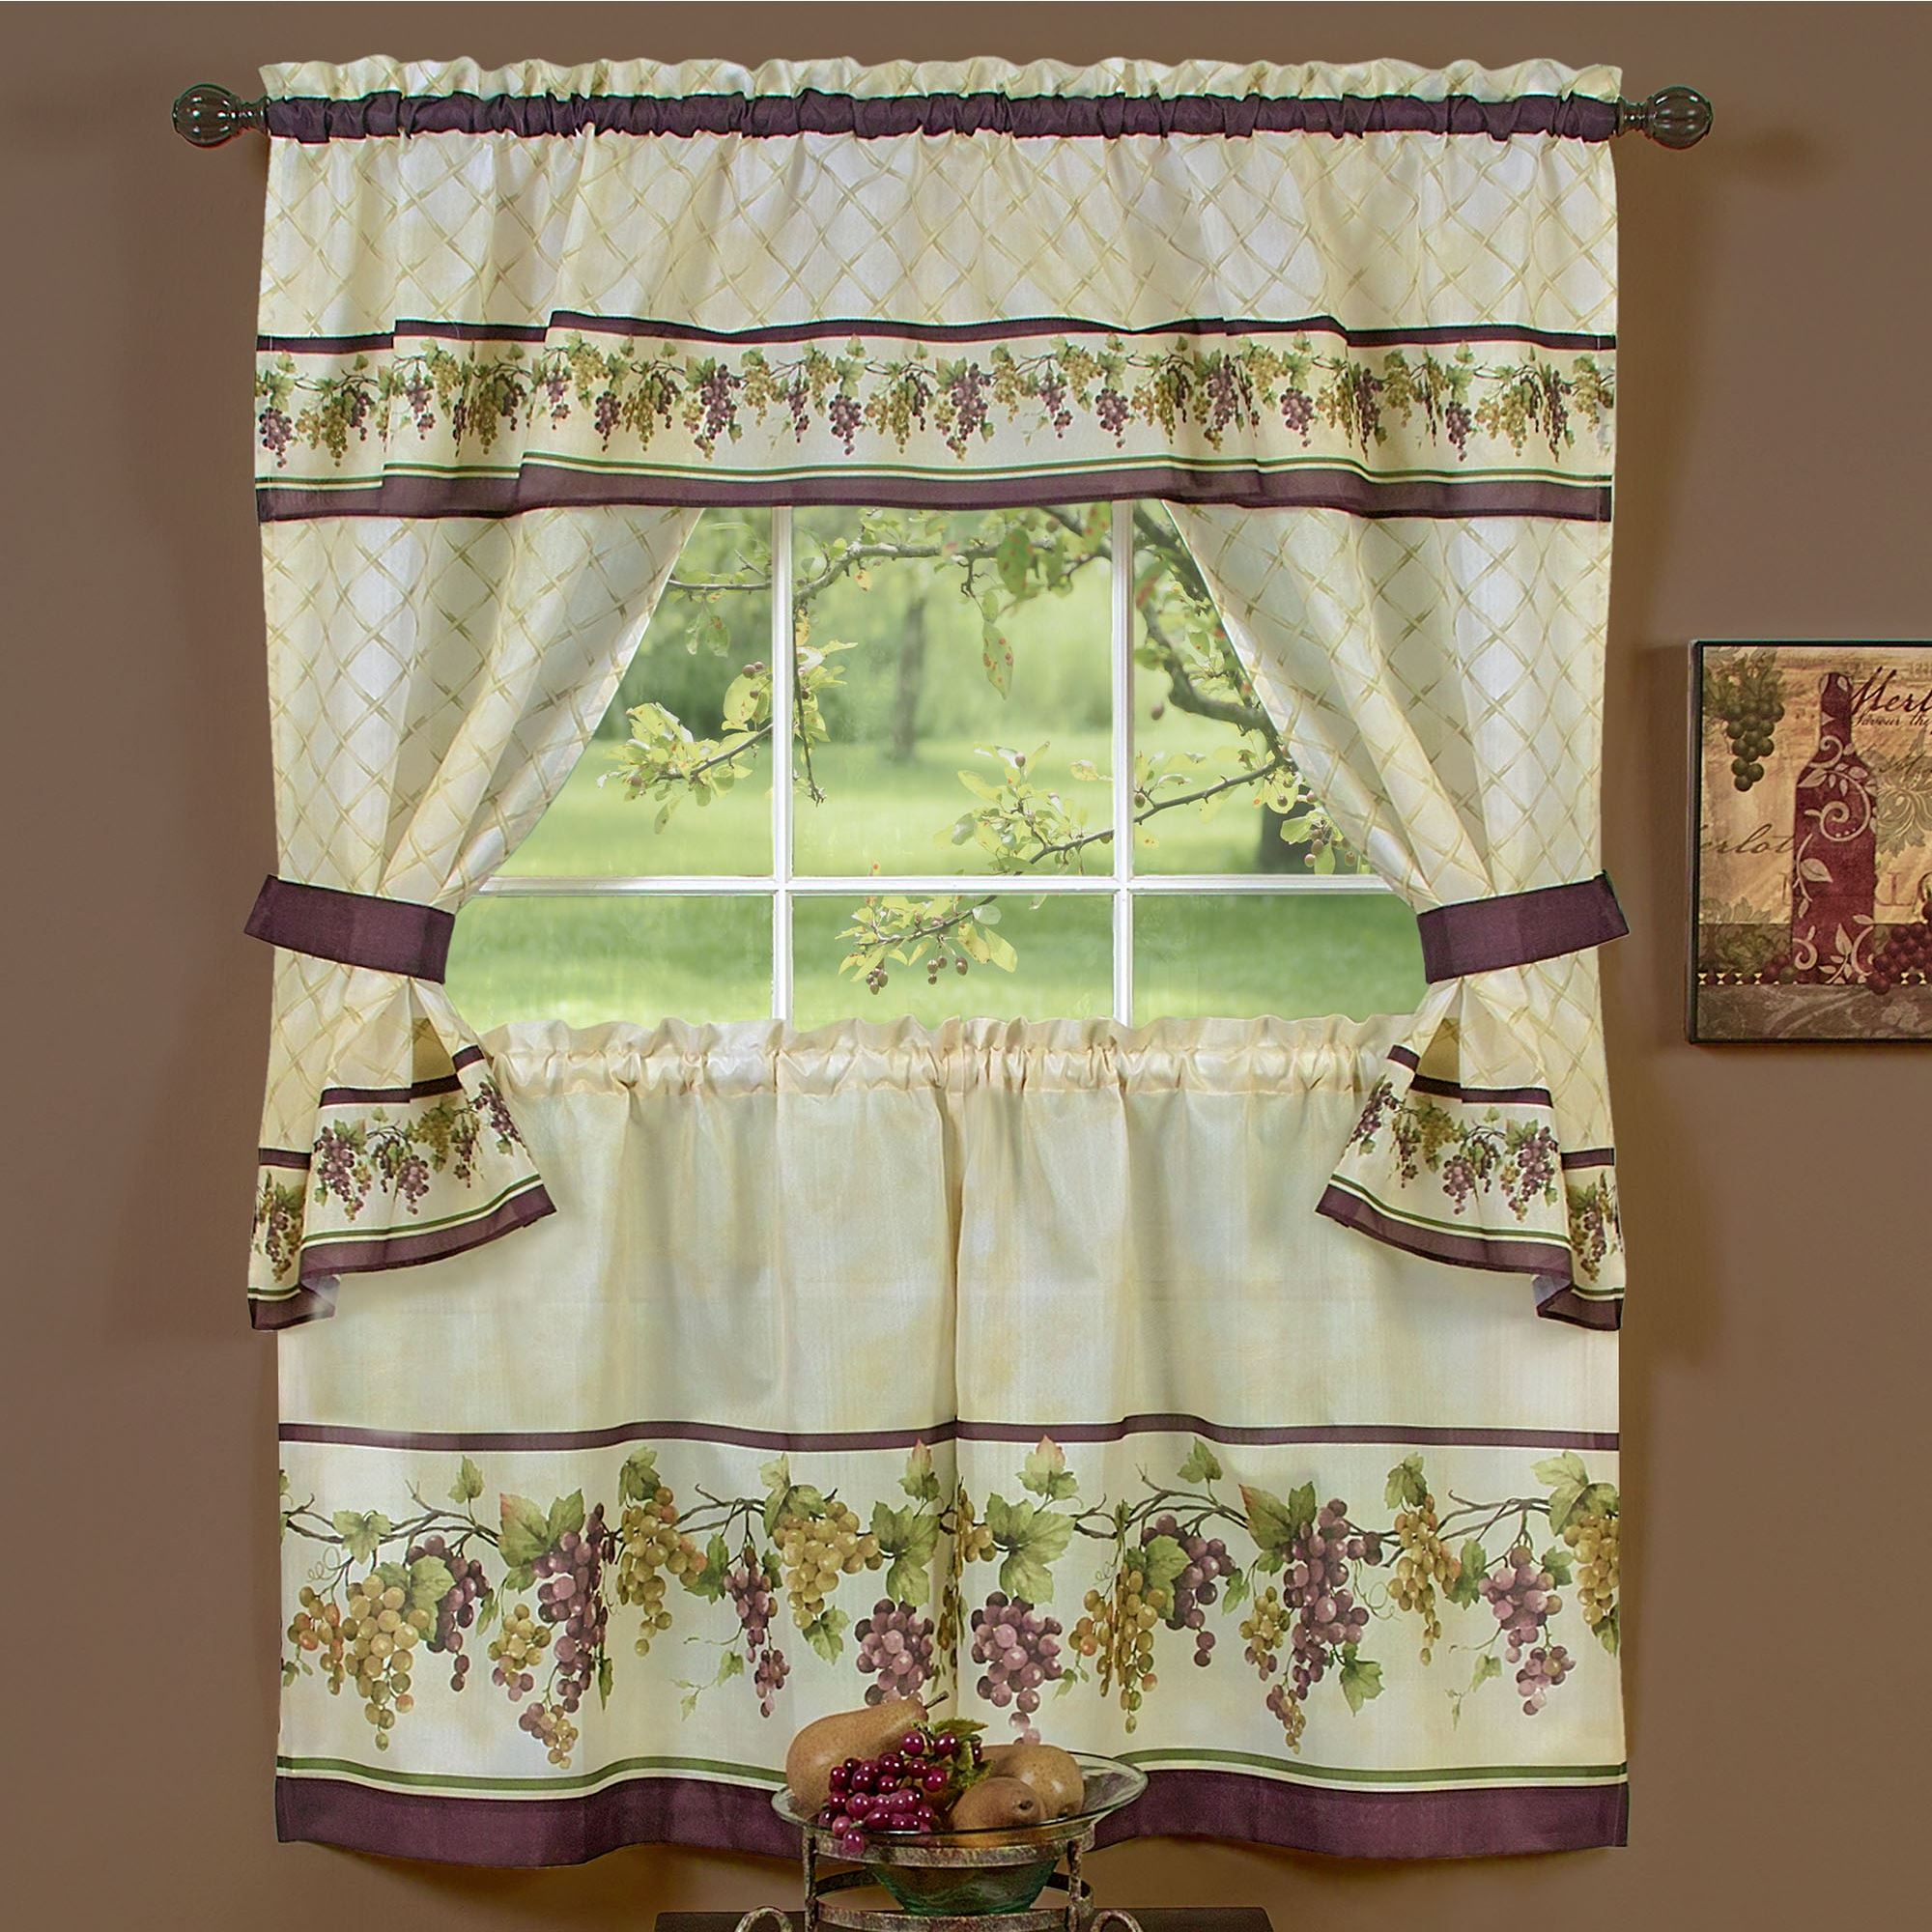 Kitchen Curtains Tiers and Valance Window Treatments